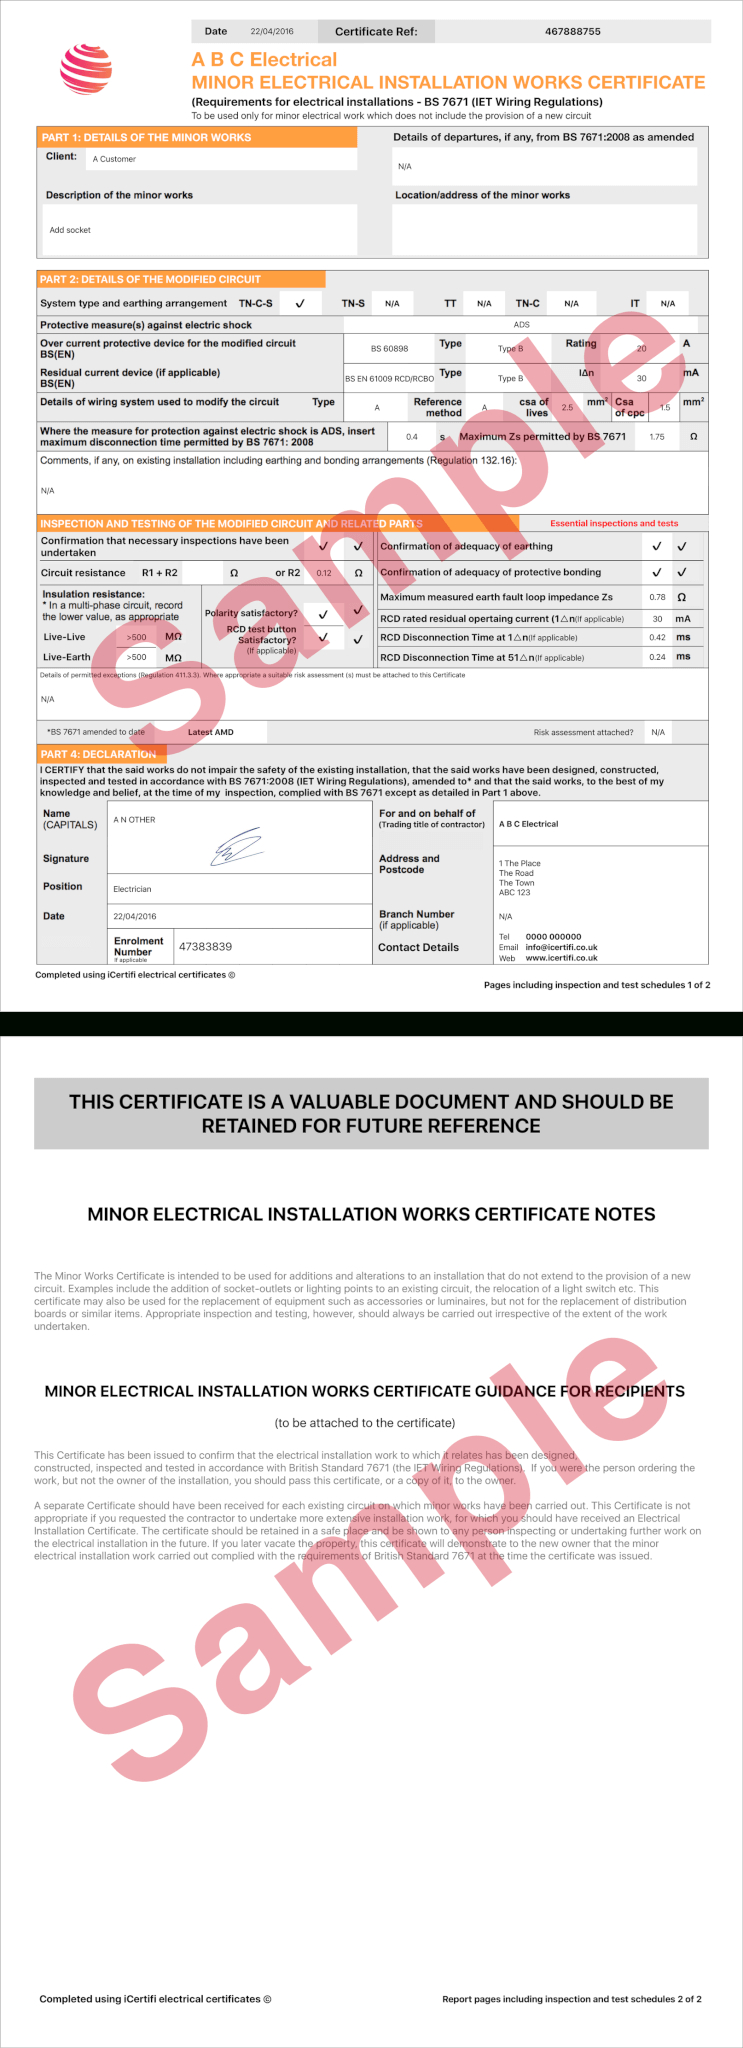 Electrical Certificate - Example Minor Works Certificate With Electrical Minor Works Certificate Template